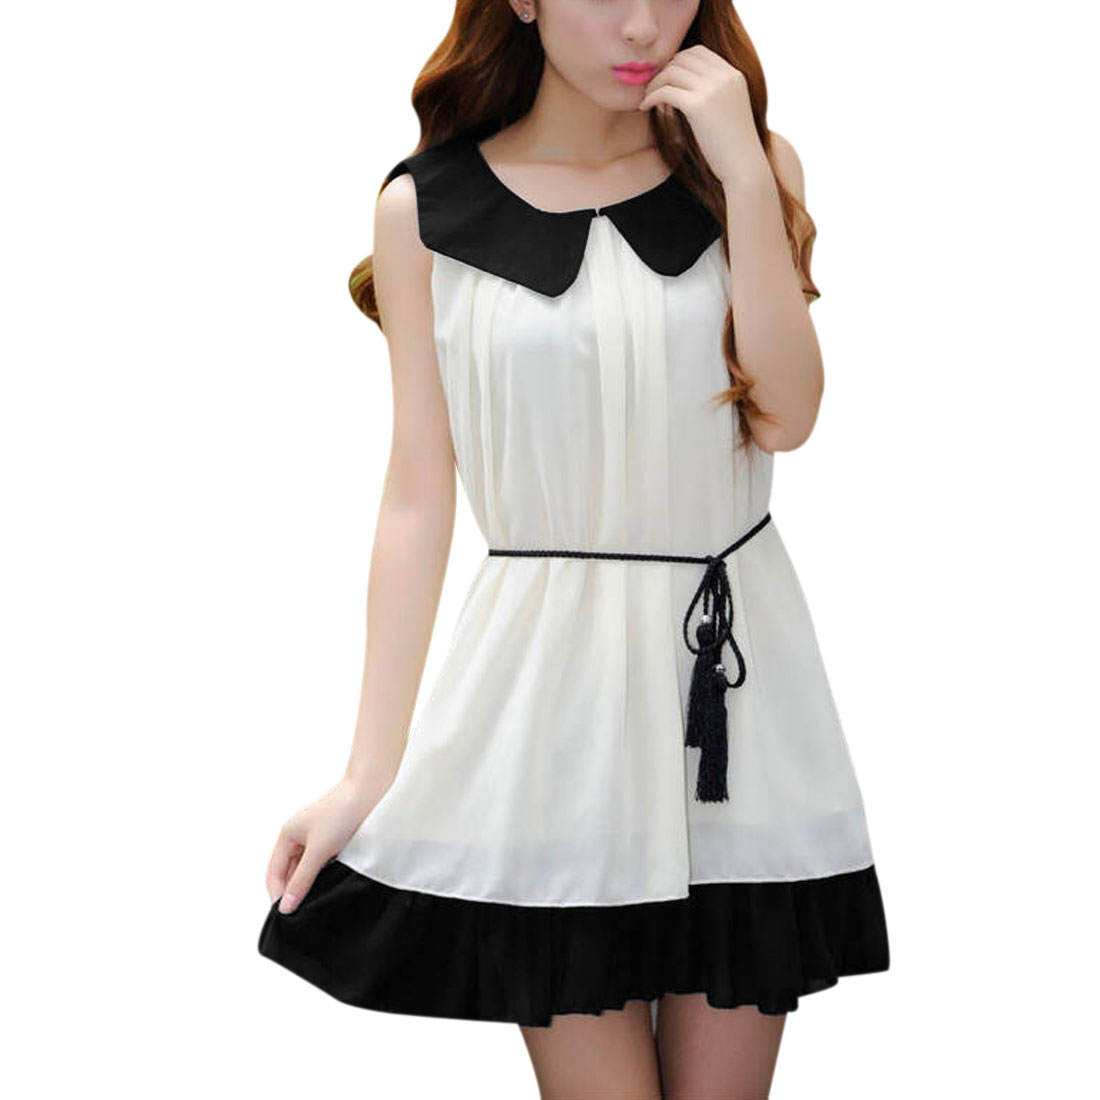 Women Peter Pan Collar Tunic Dress Cream Black S